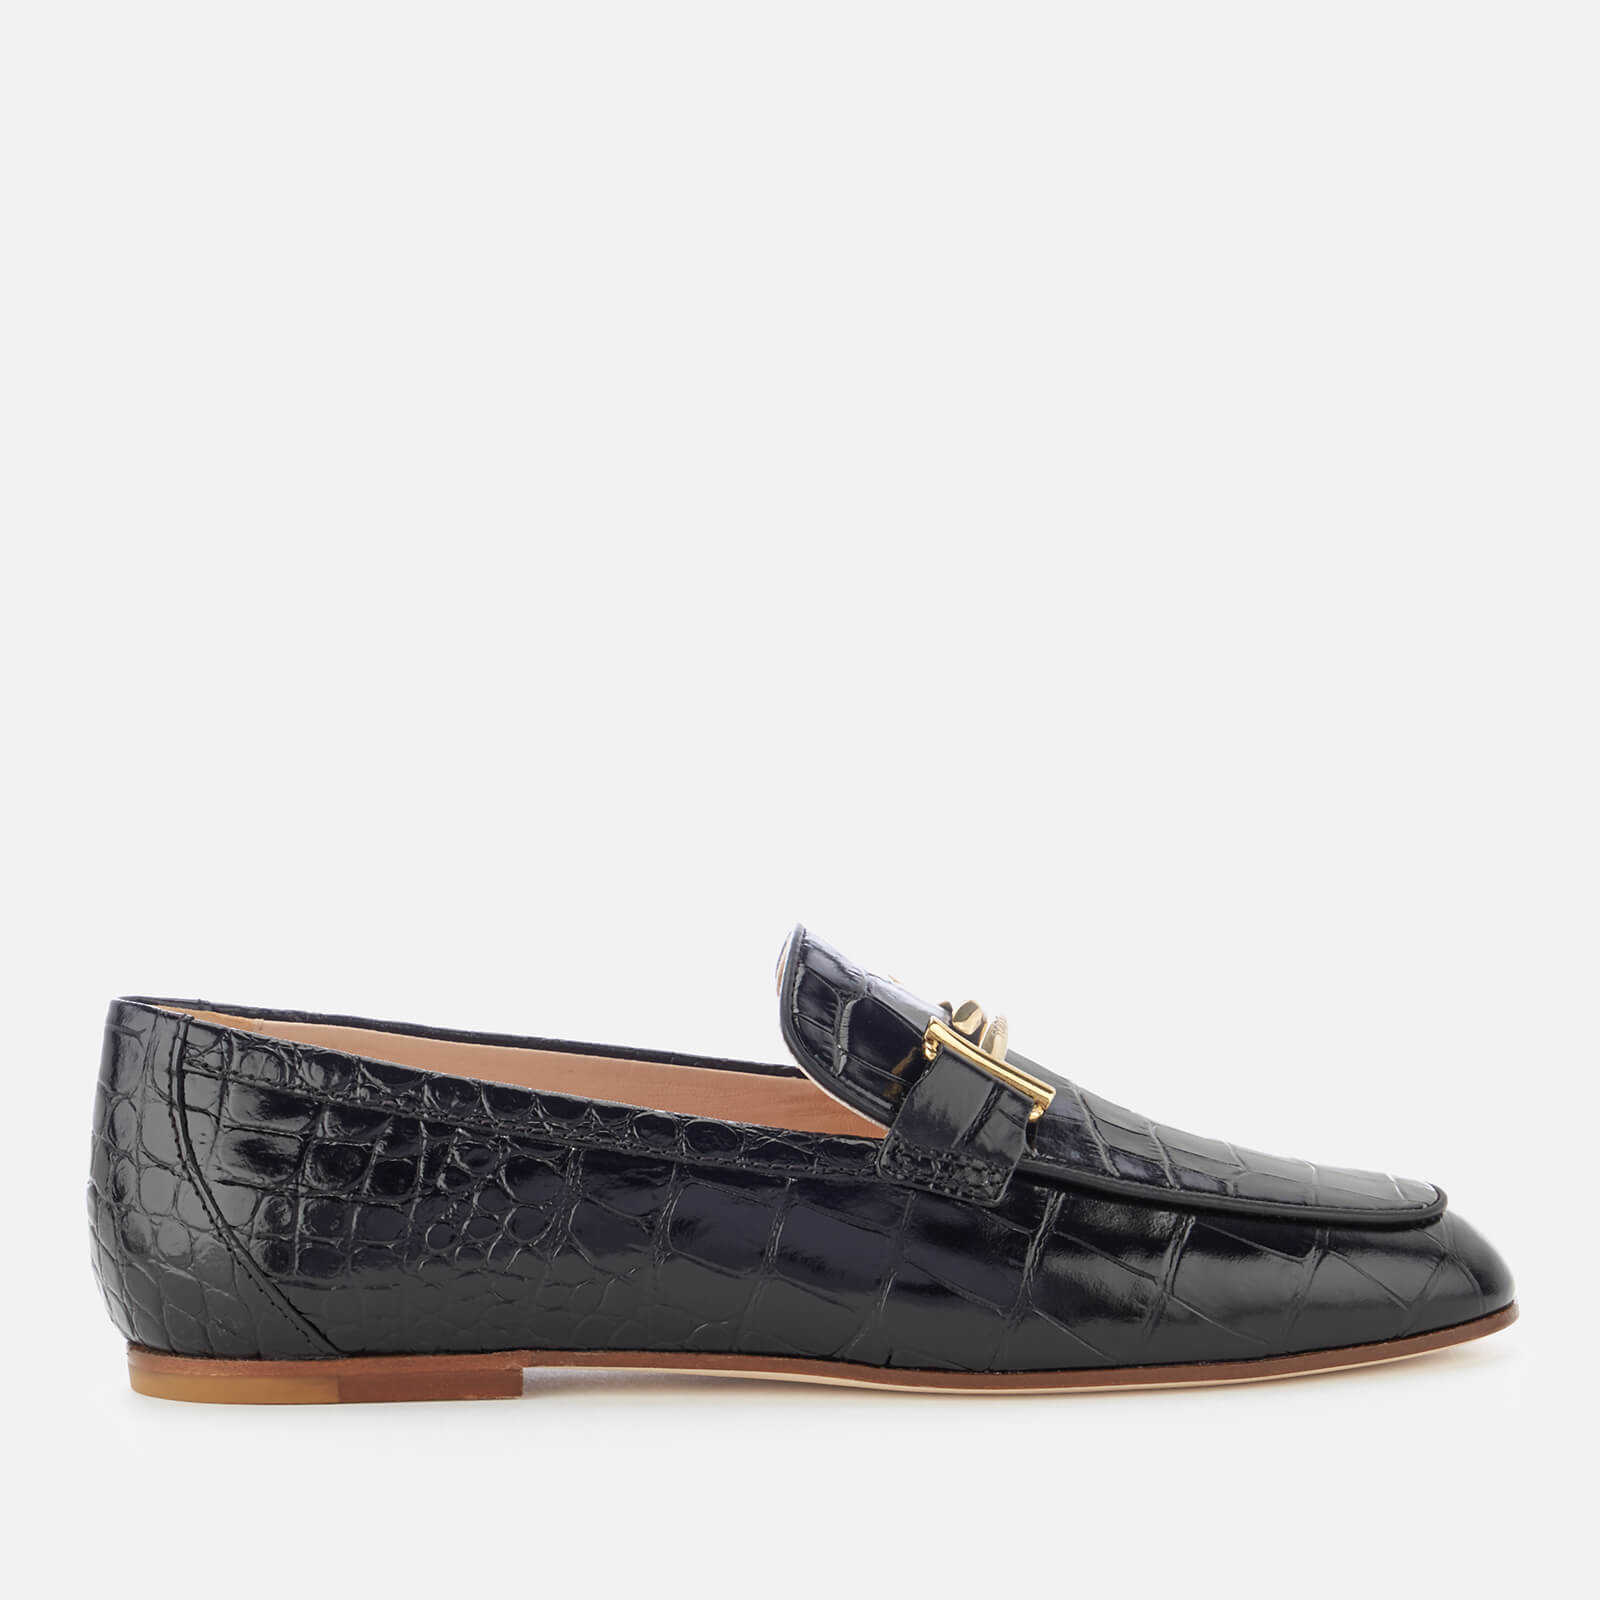 673997d514b Tod s Women s Leather Loafers - Black Tod s Women s Leather Loafers - Black